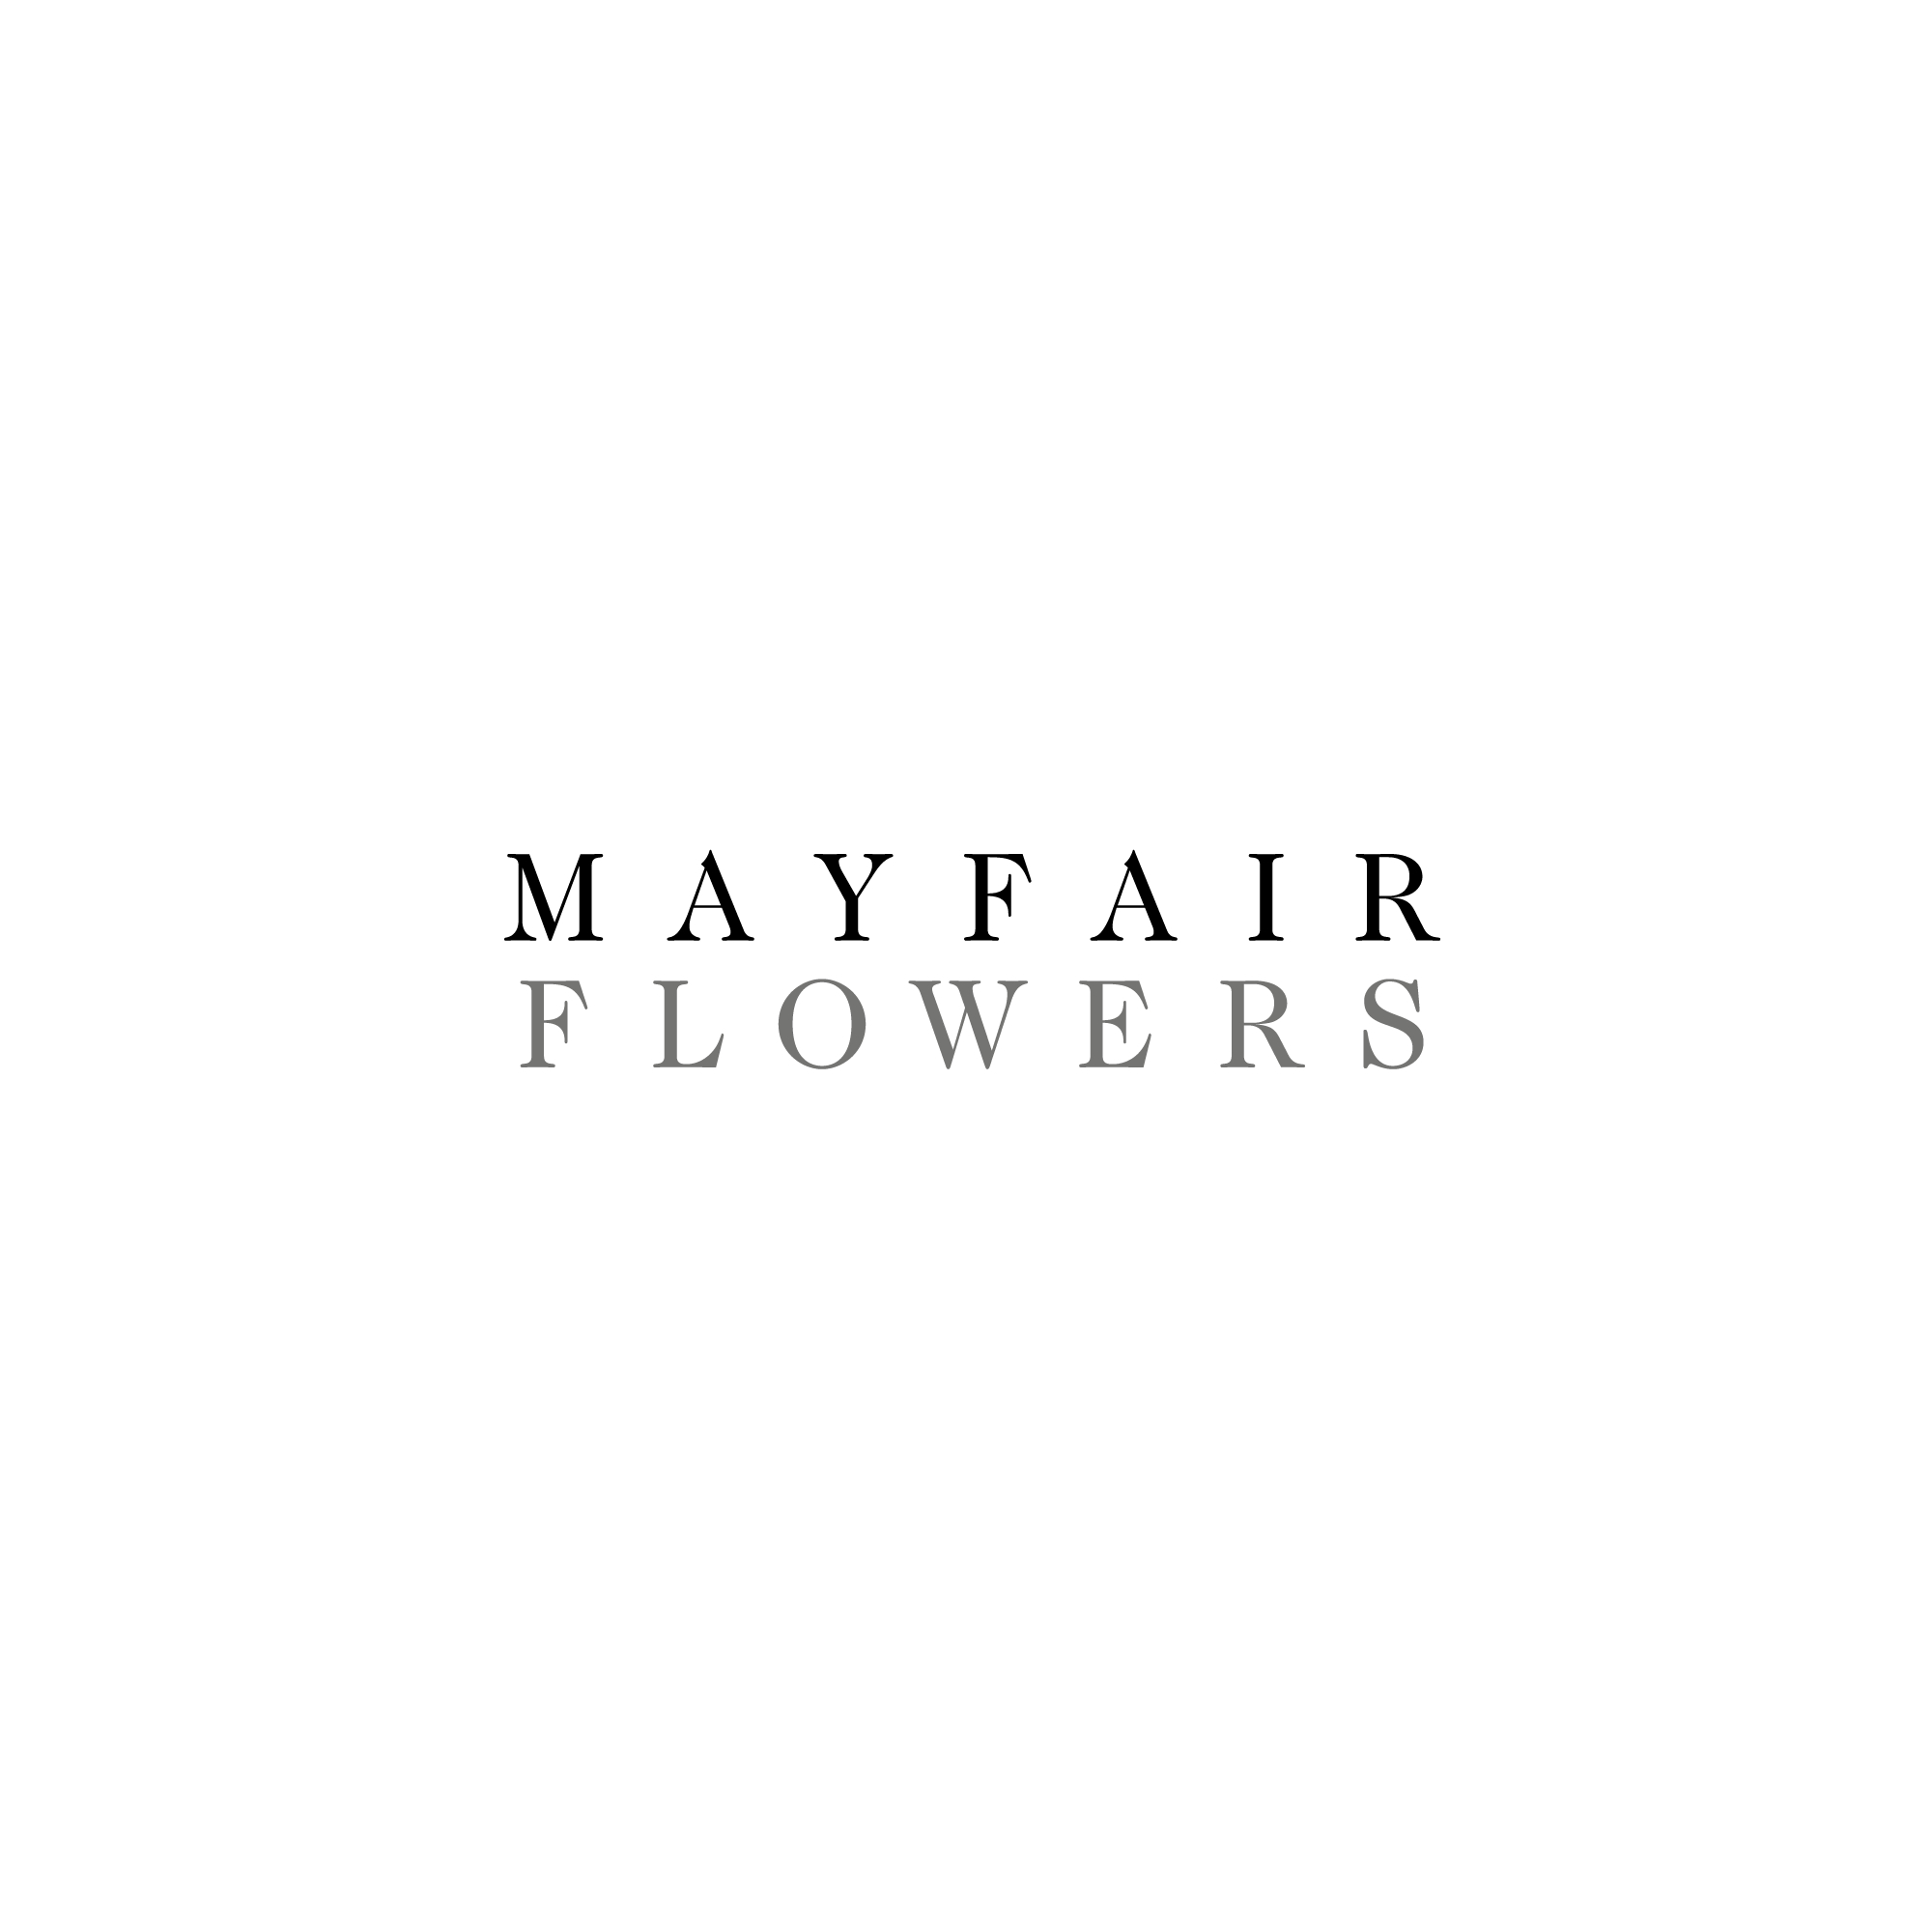 Mayfair Flowers|Identity CI, Graphics and Sign